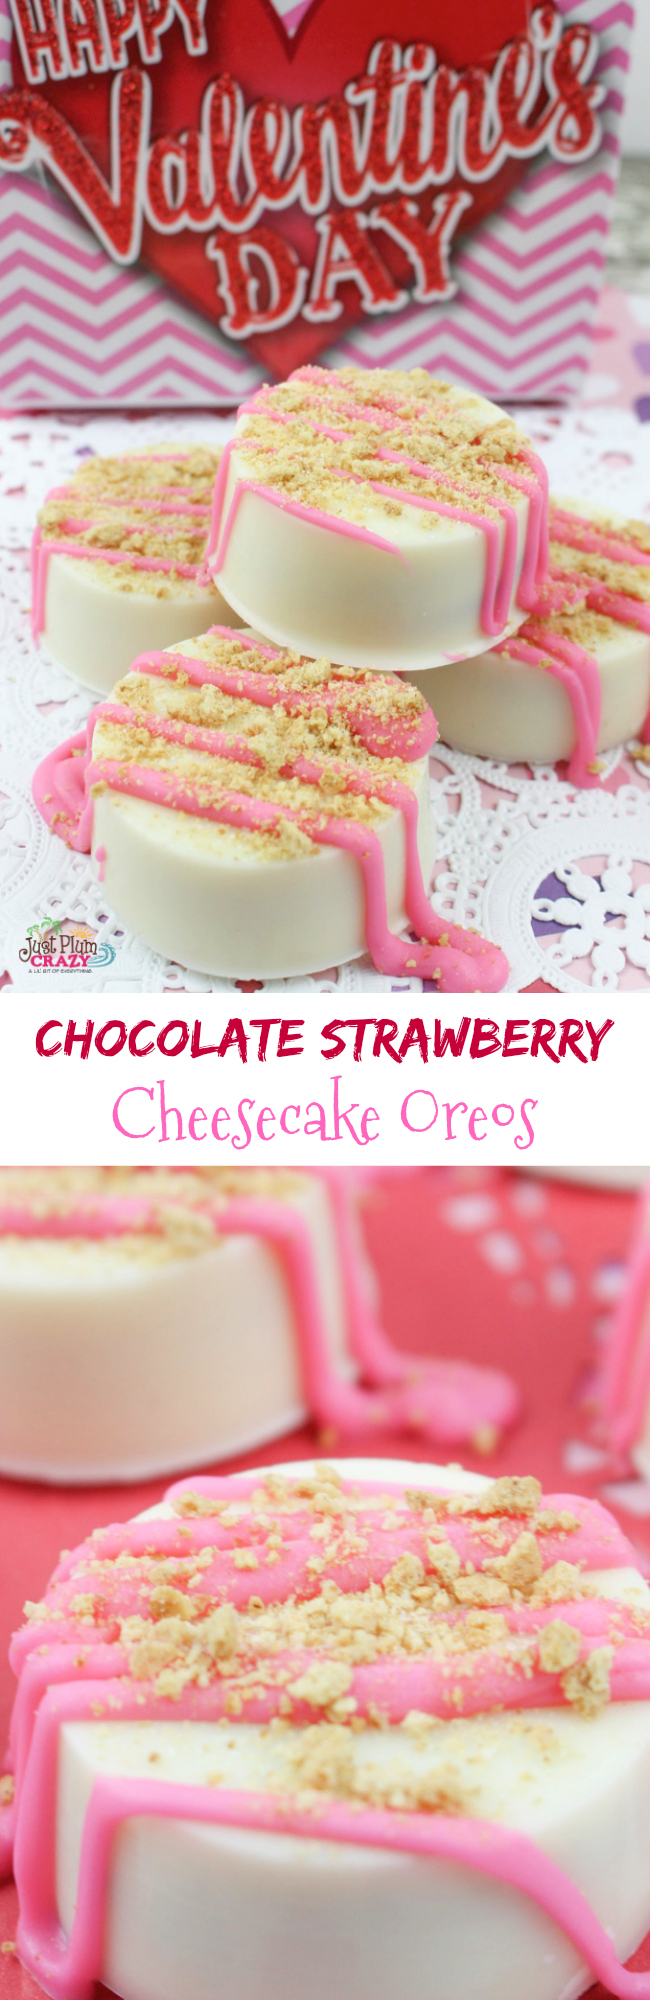 chocolate strawberry cheesecake Oreos